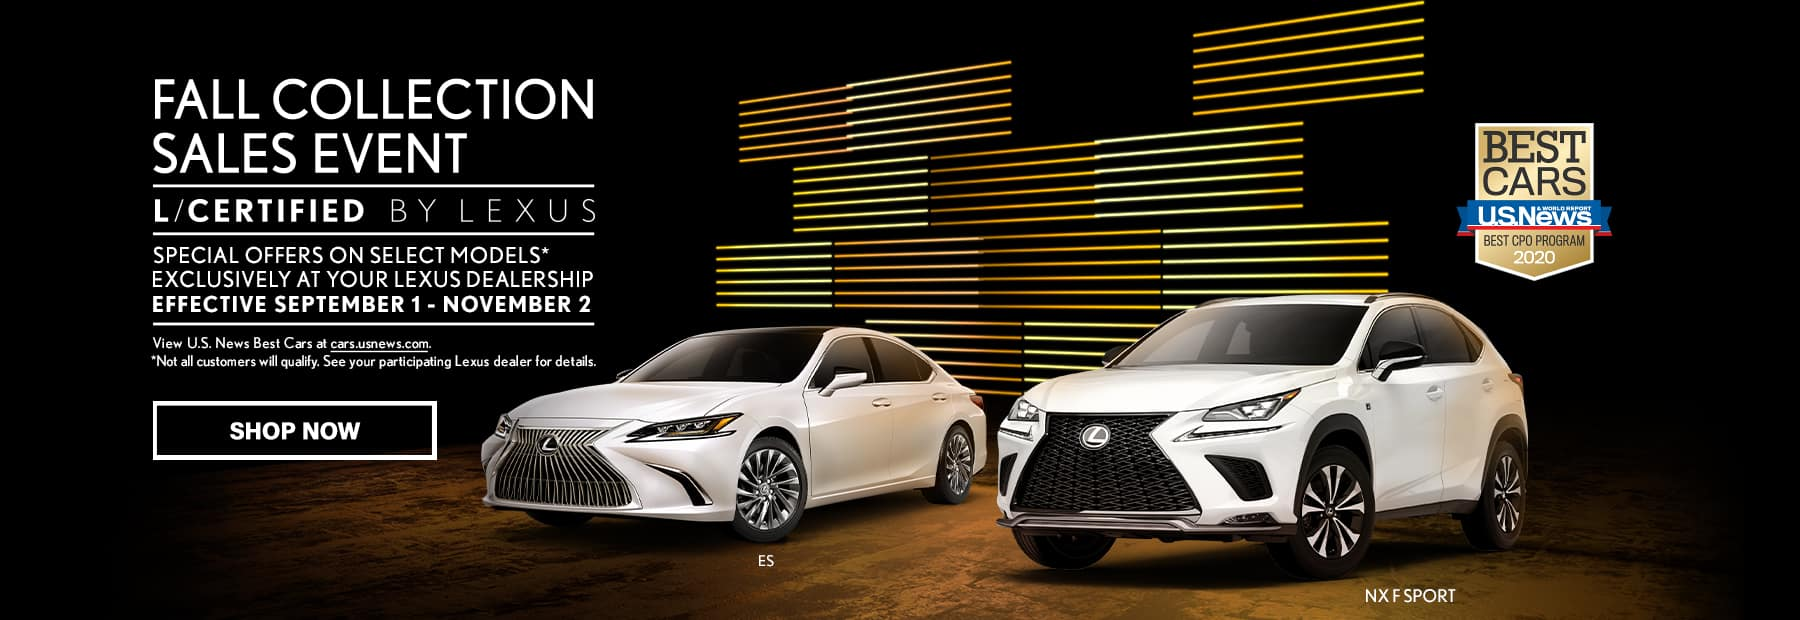 Performance Lexus Fall Collection Sales Event L/Certified